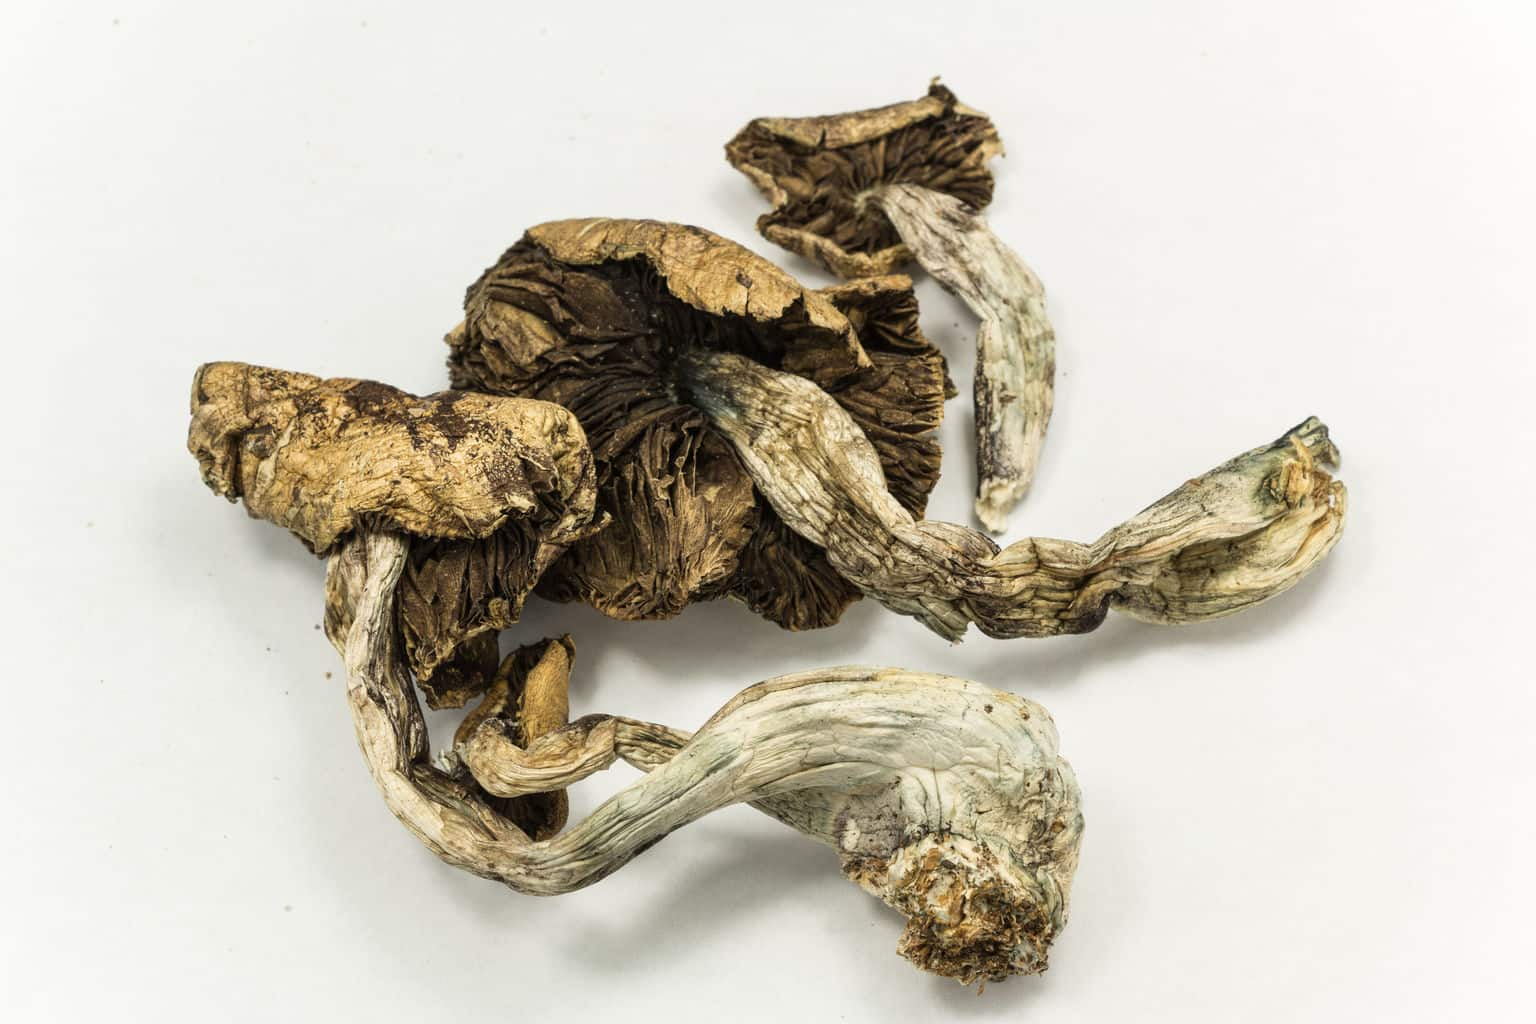 Magic mushrooms may treat anxiety and depression